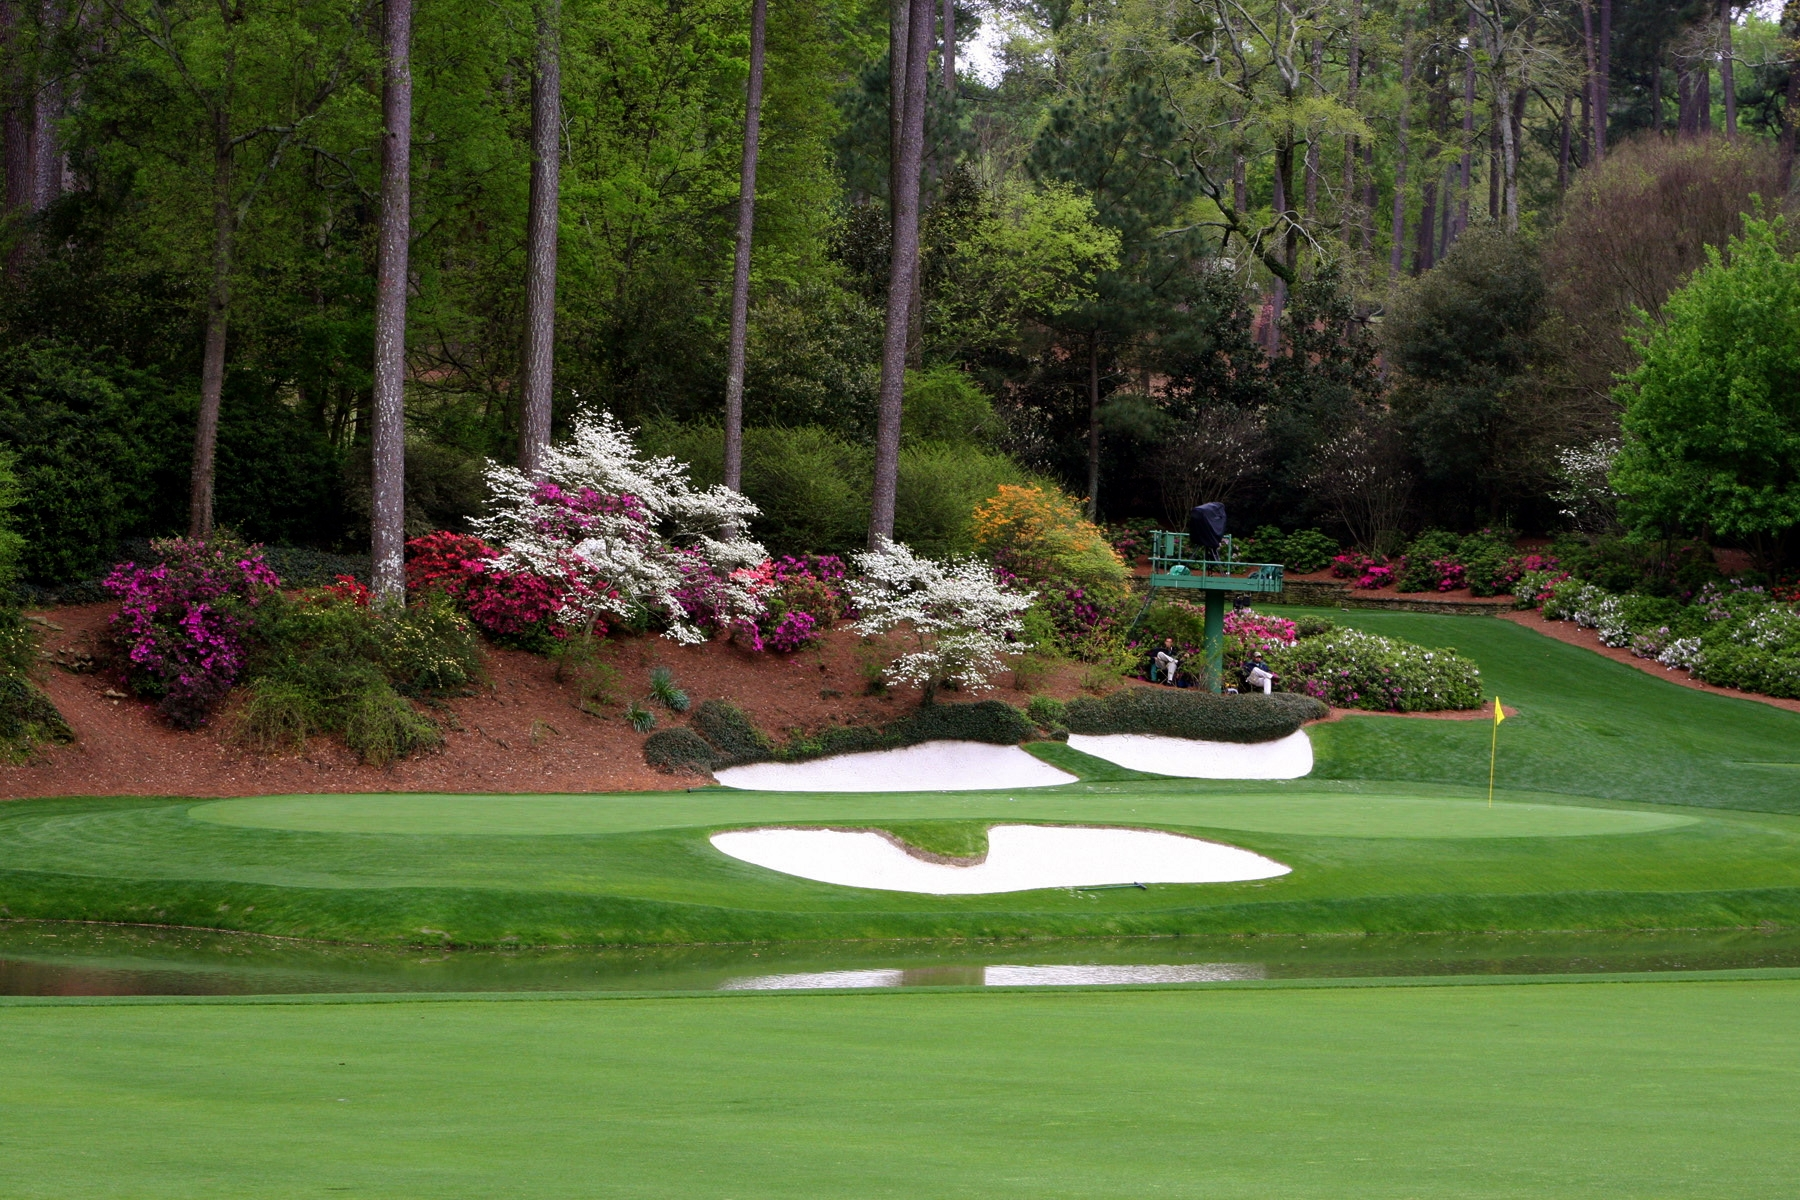 Eric Lohman talks Augusta and Golf in 2018